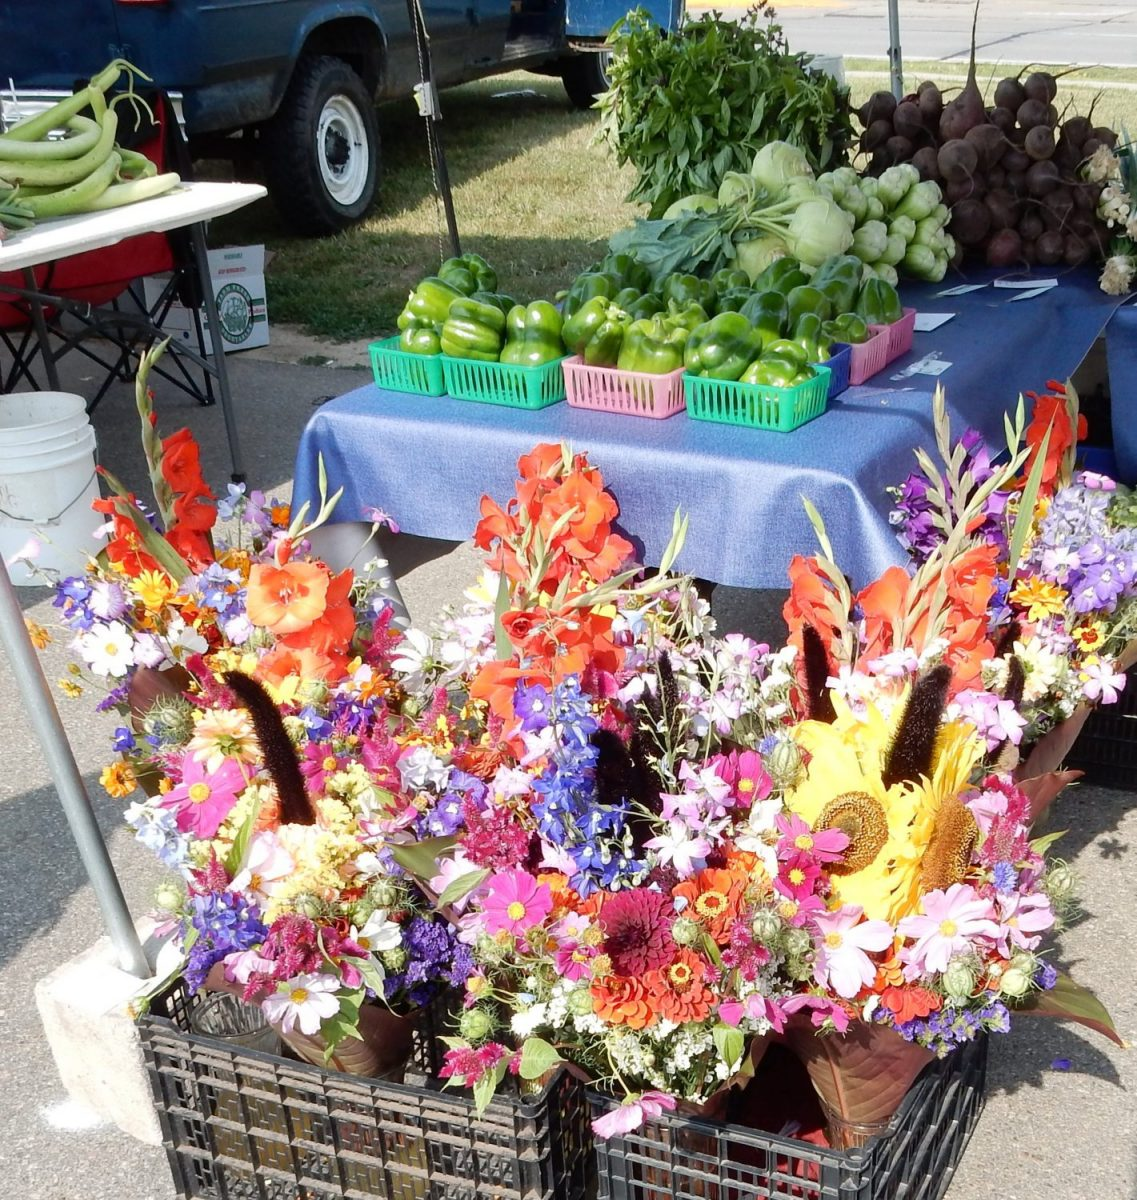 Flowers and vegetables for sale at the Festival Foods Marshfield Farmers' Market (Hub City Times Photo/Adam Hocking).